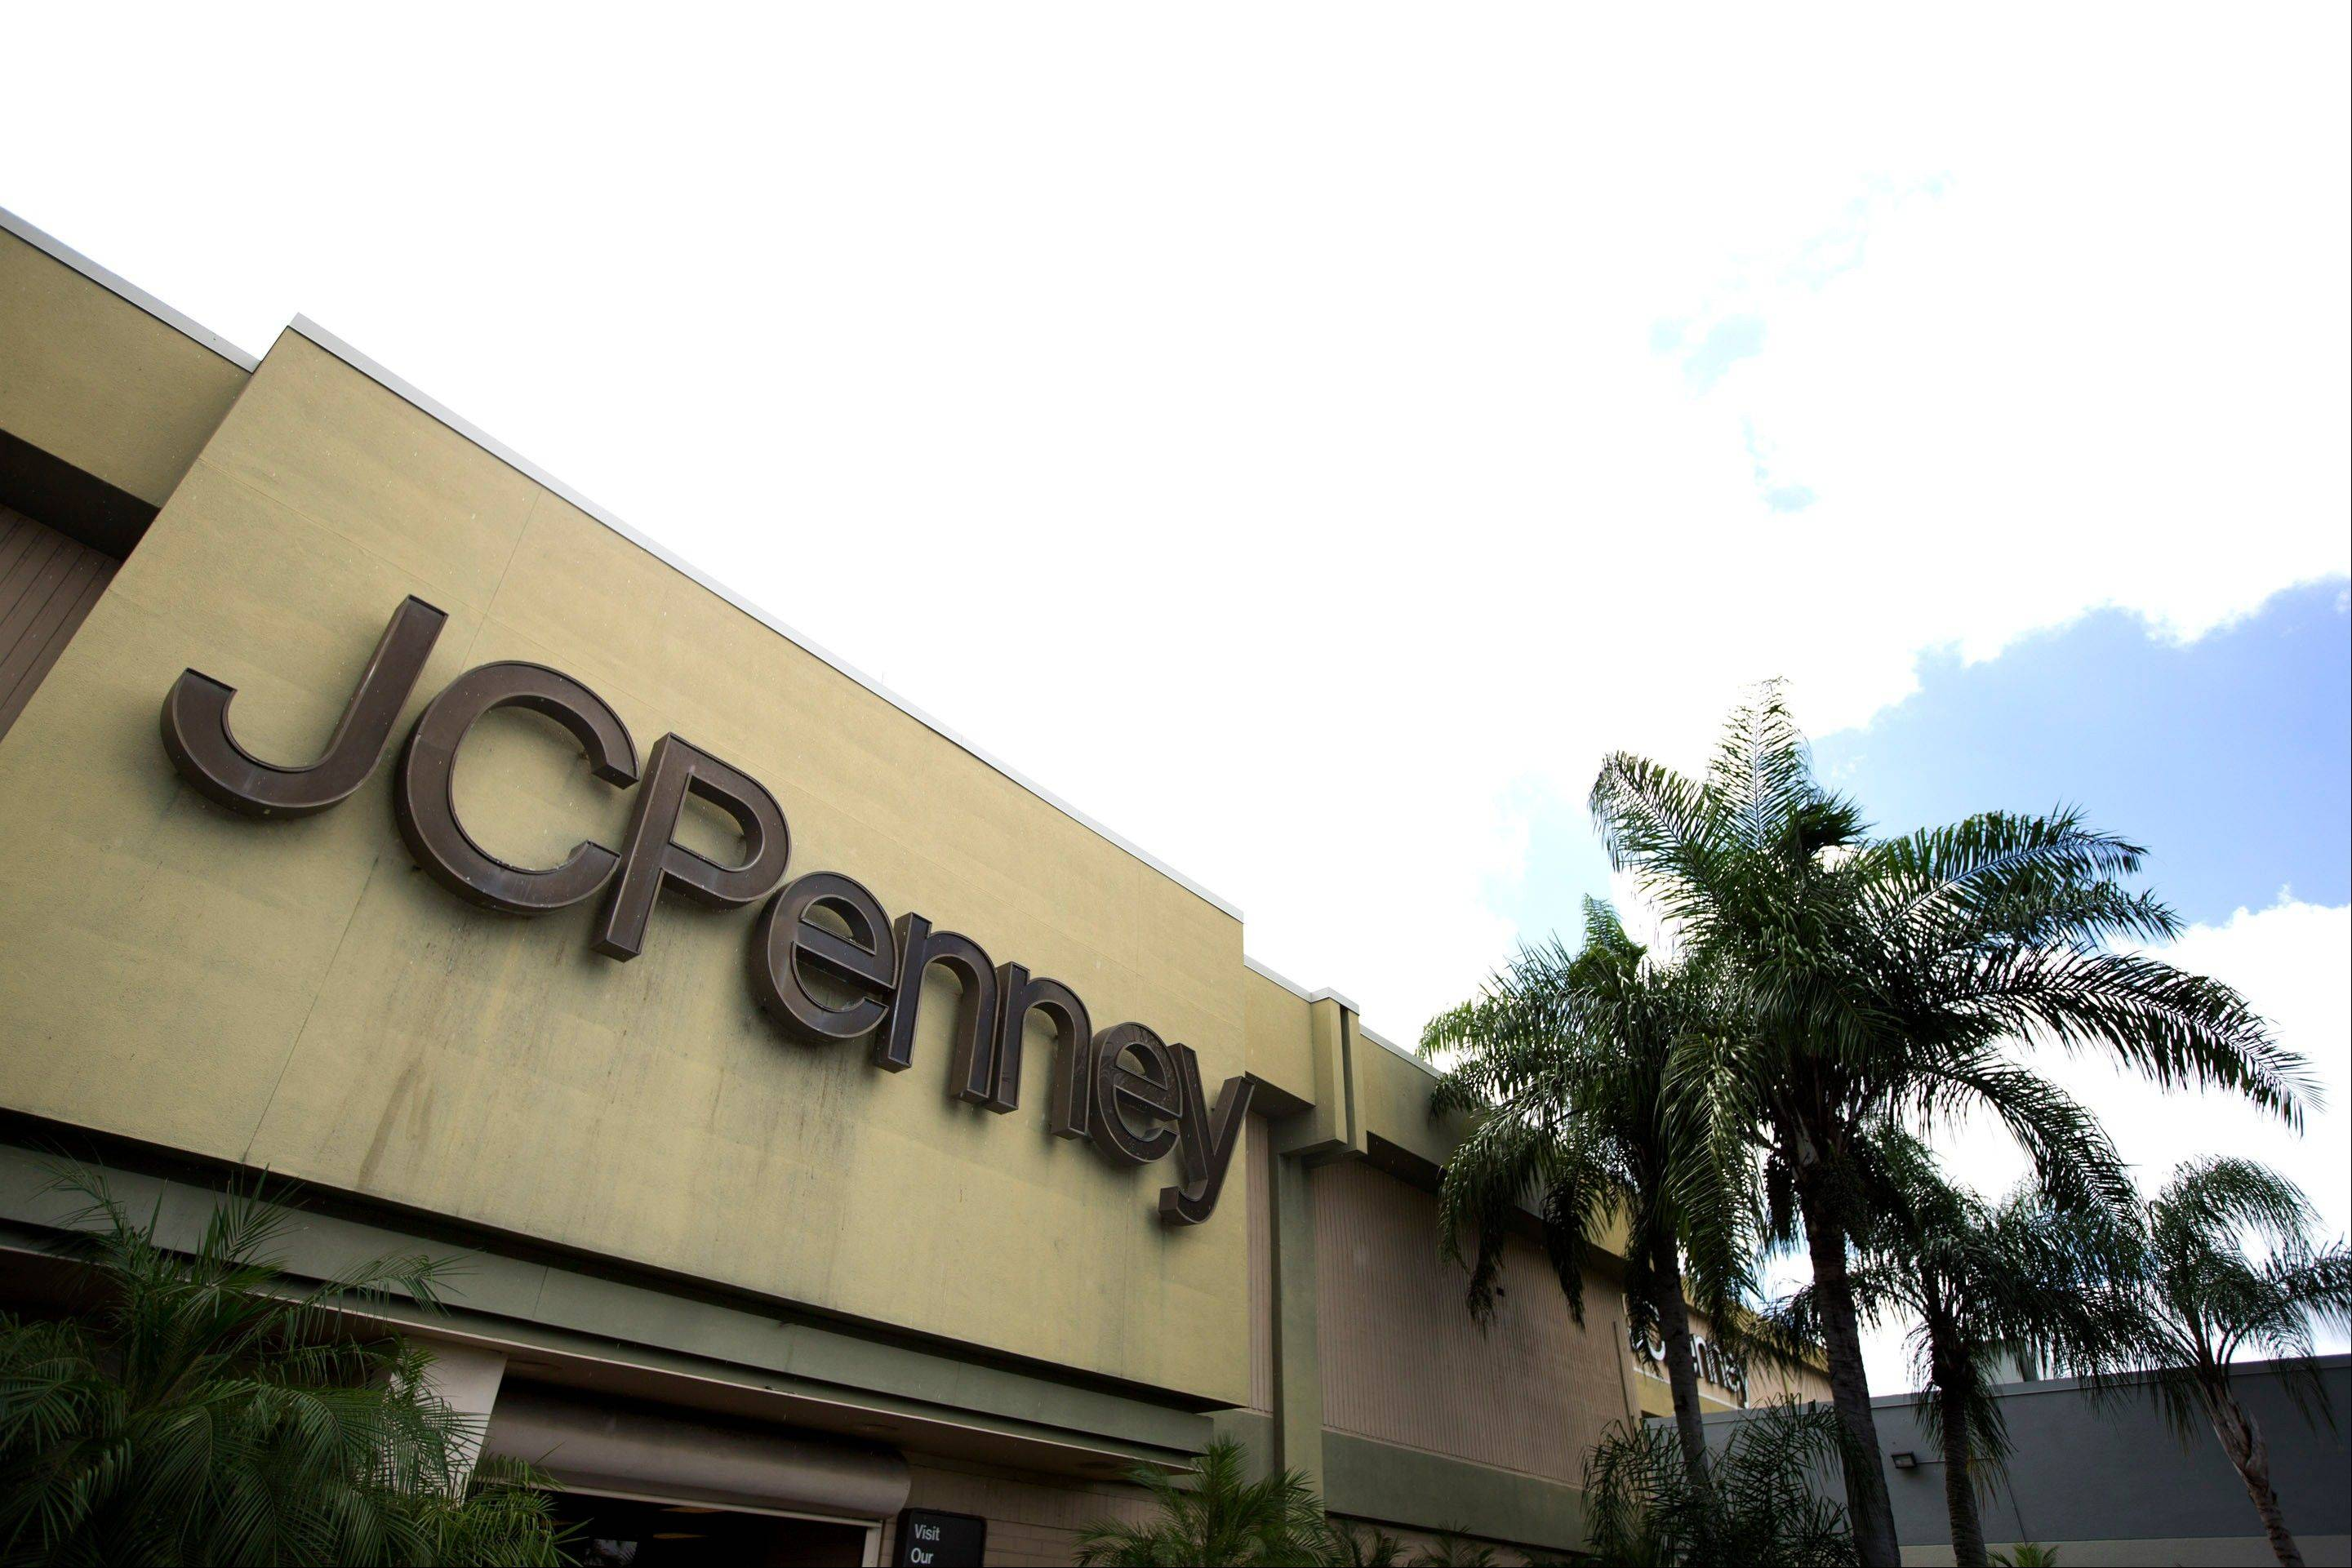 This Monday, Aug. 19, 2013 photo shows the entrance to a J.C. Penney store at a Hialeah, Fla., shopping mall. On Tuesday, Aug. 20, 2013, J.C. Penney reports quarterly financial results.